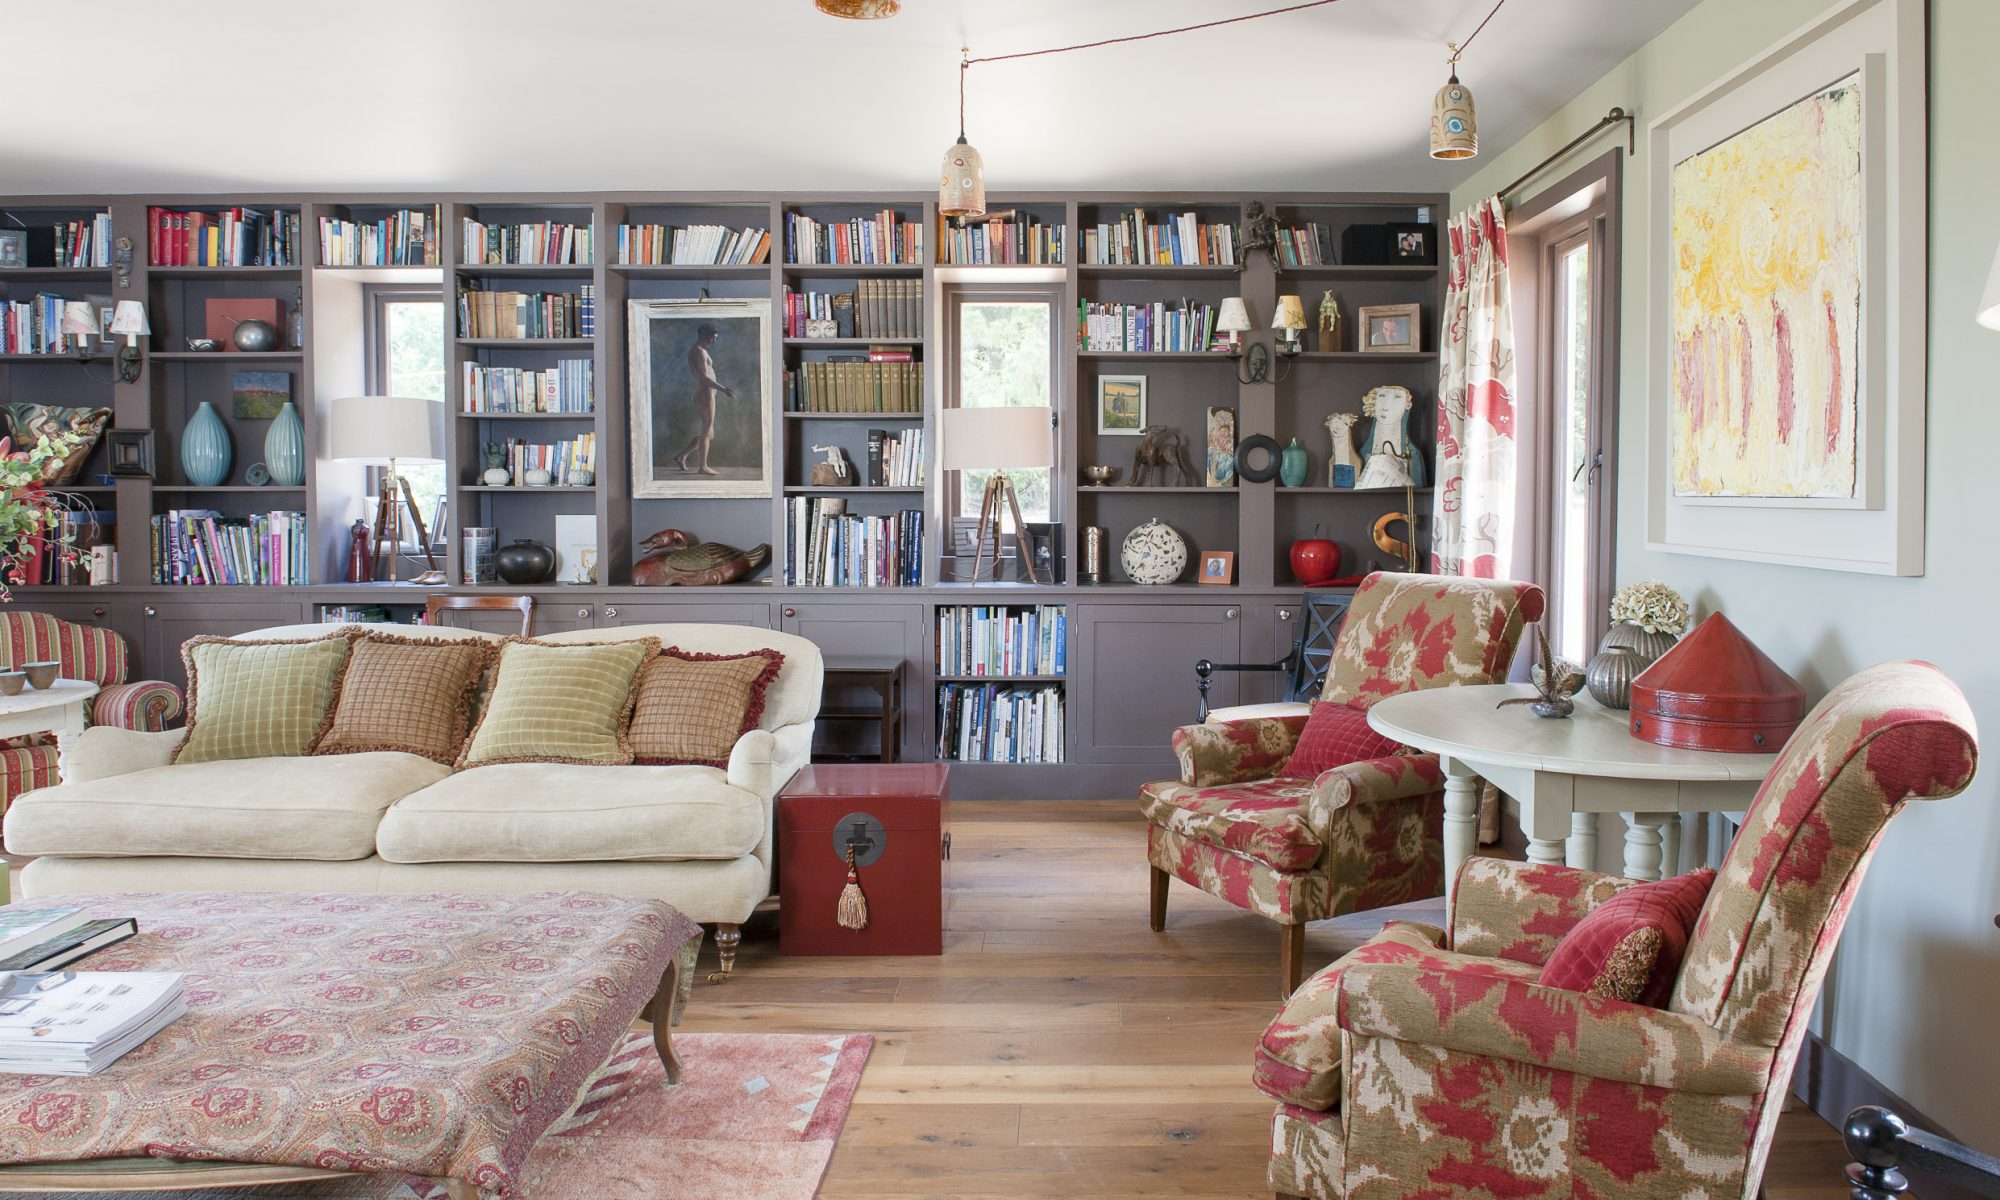 The double aspect drawing room runs the depth of the house and features bookshelves that span the length of one wall